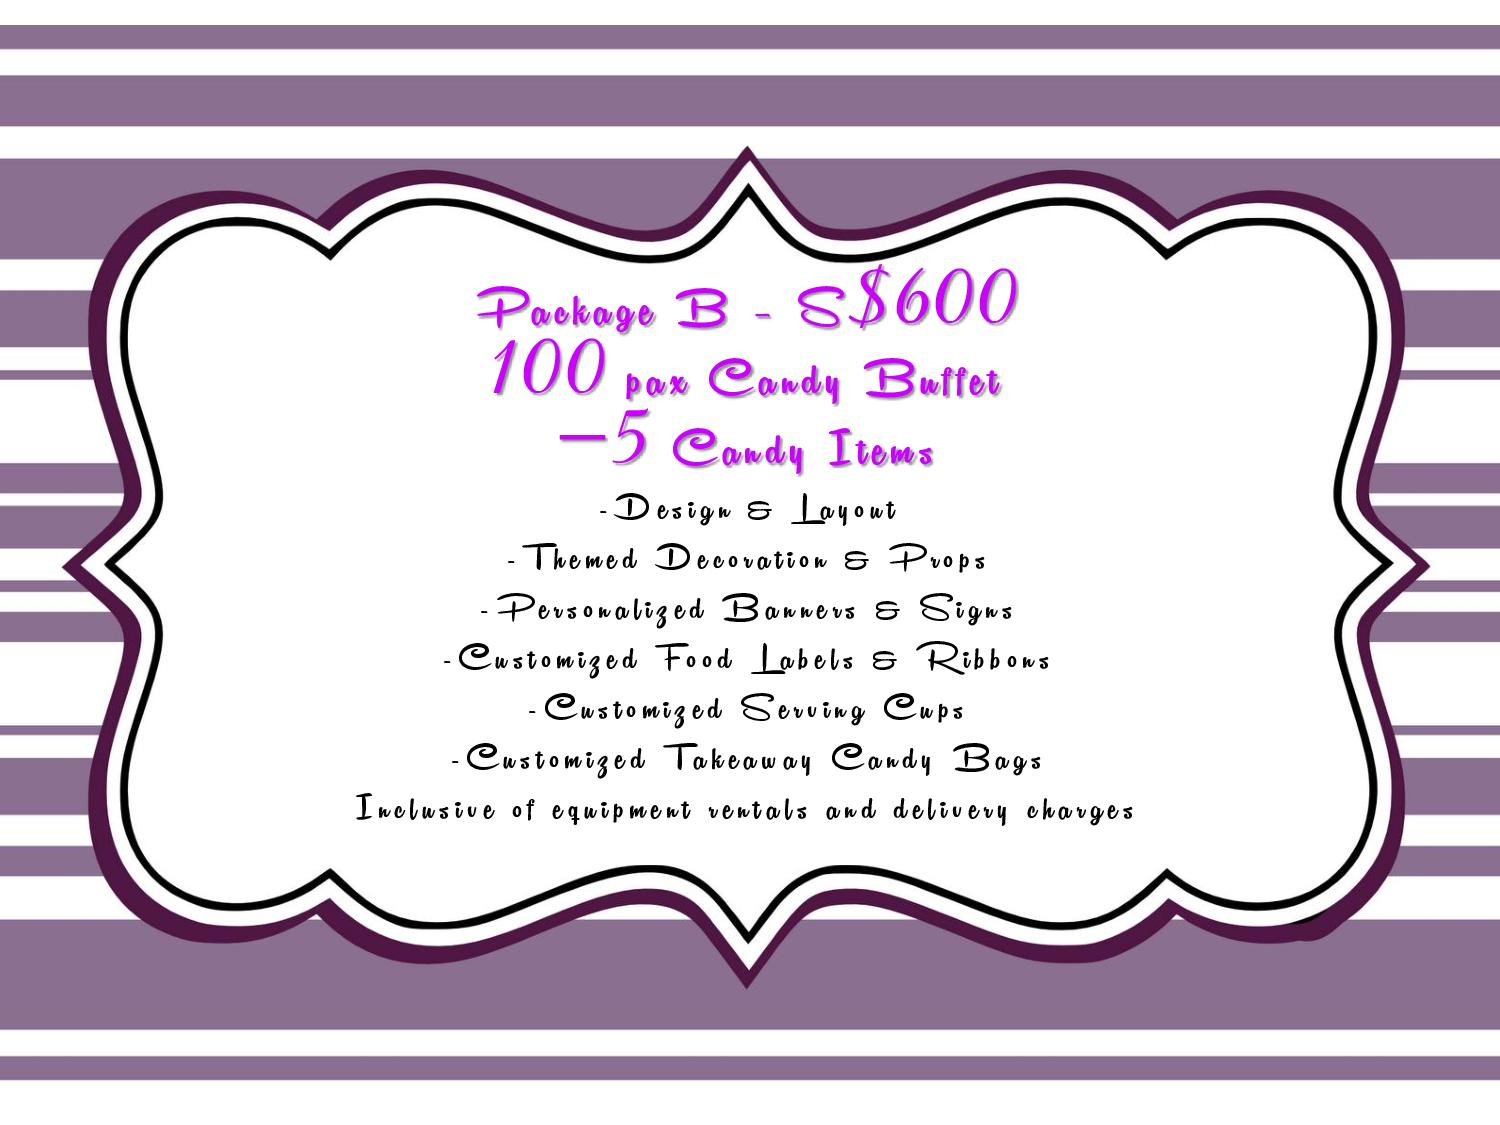 thecreativeindividual: Our Candy Buffet Price Packages for ...